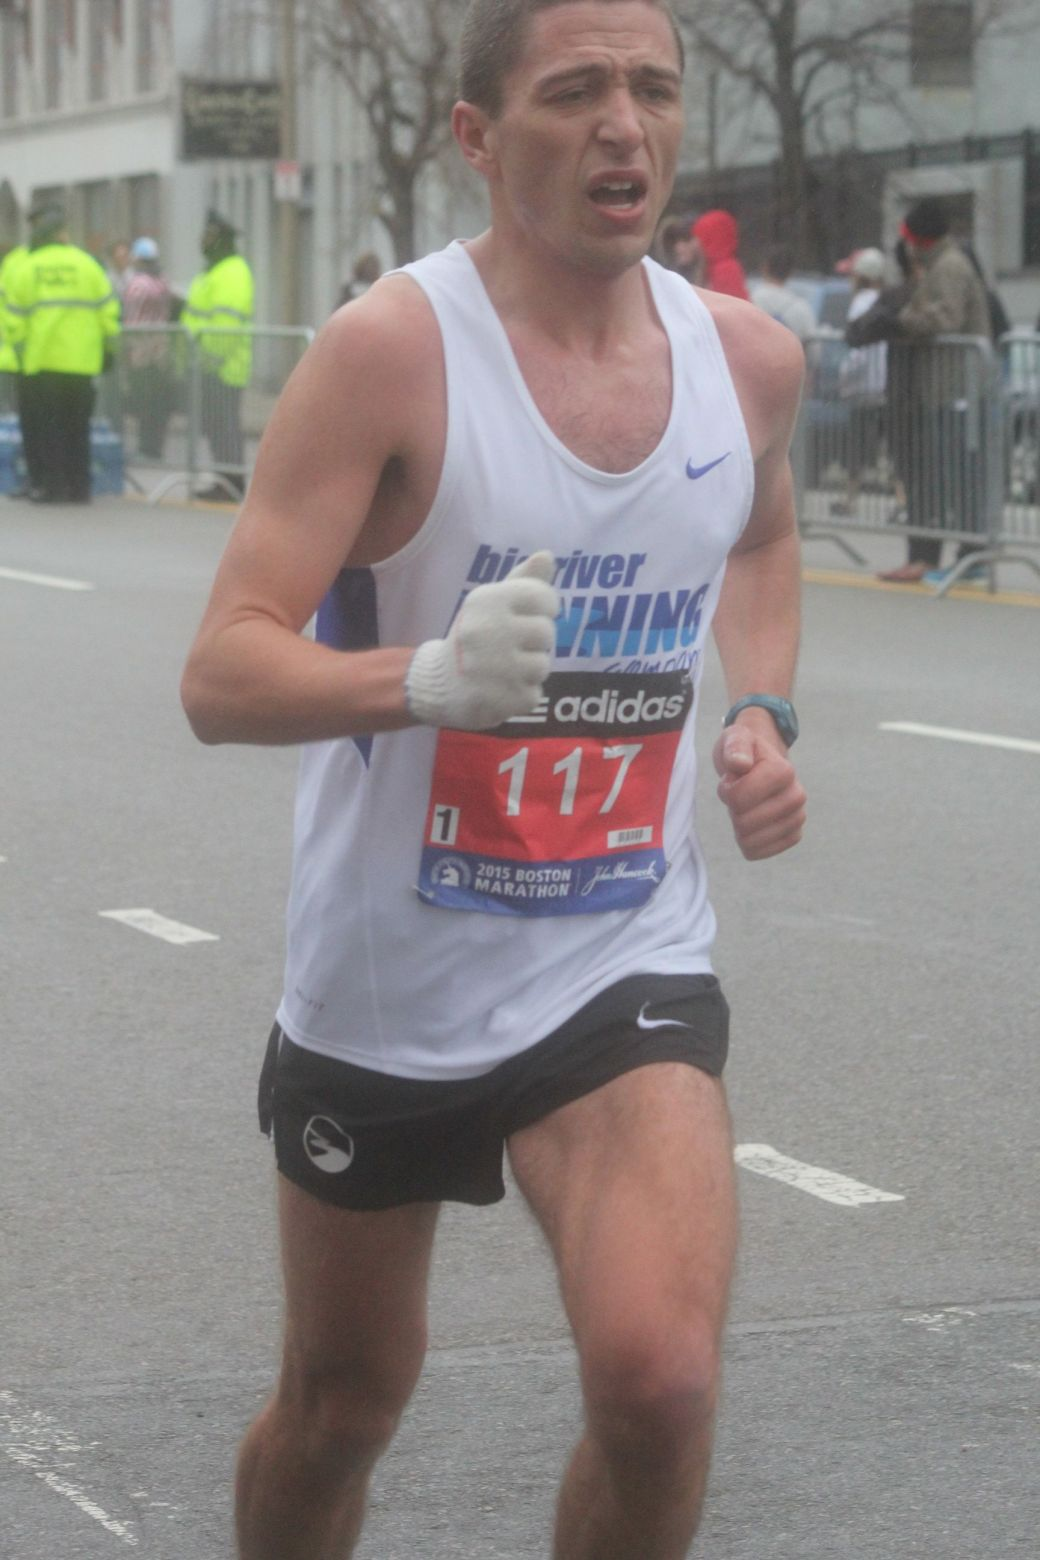 boston marathon april 20 2015 racer number 117